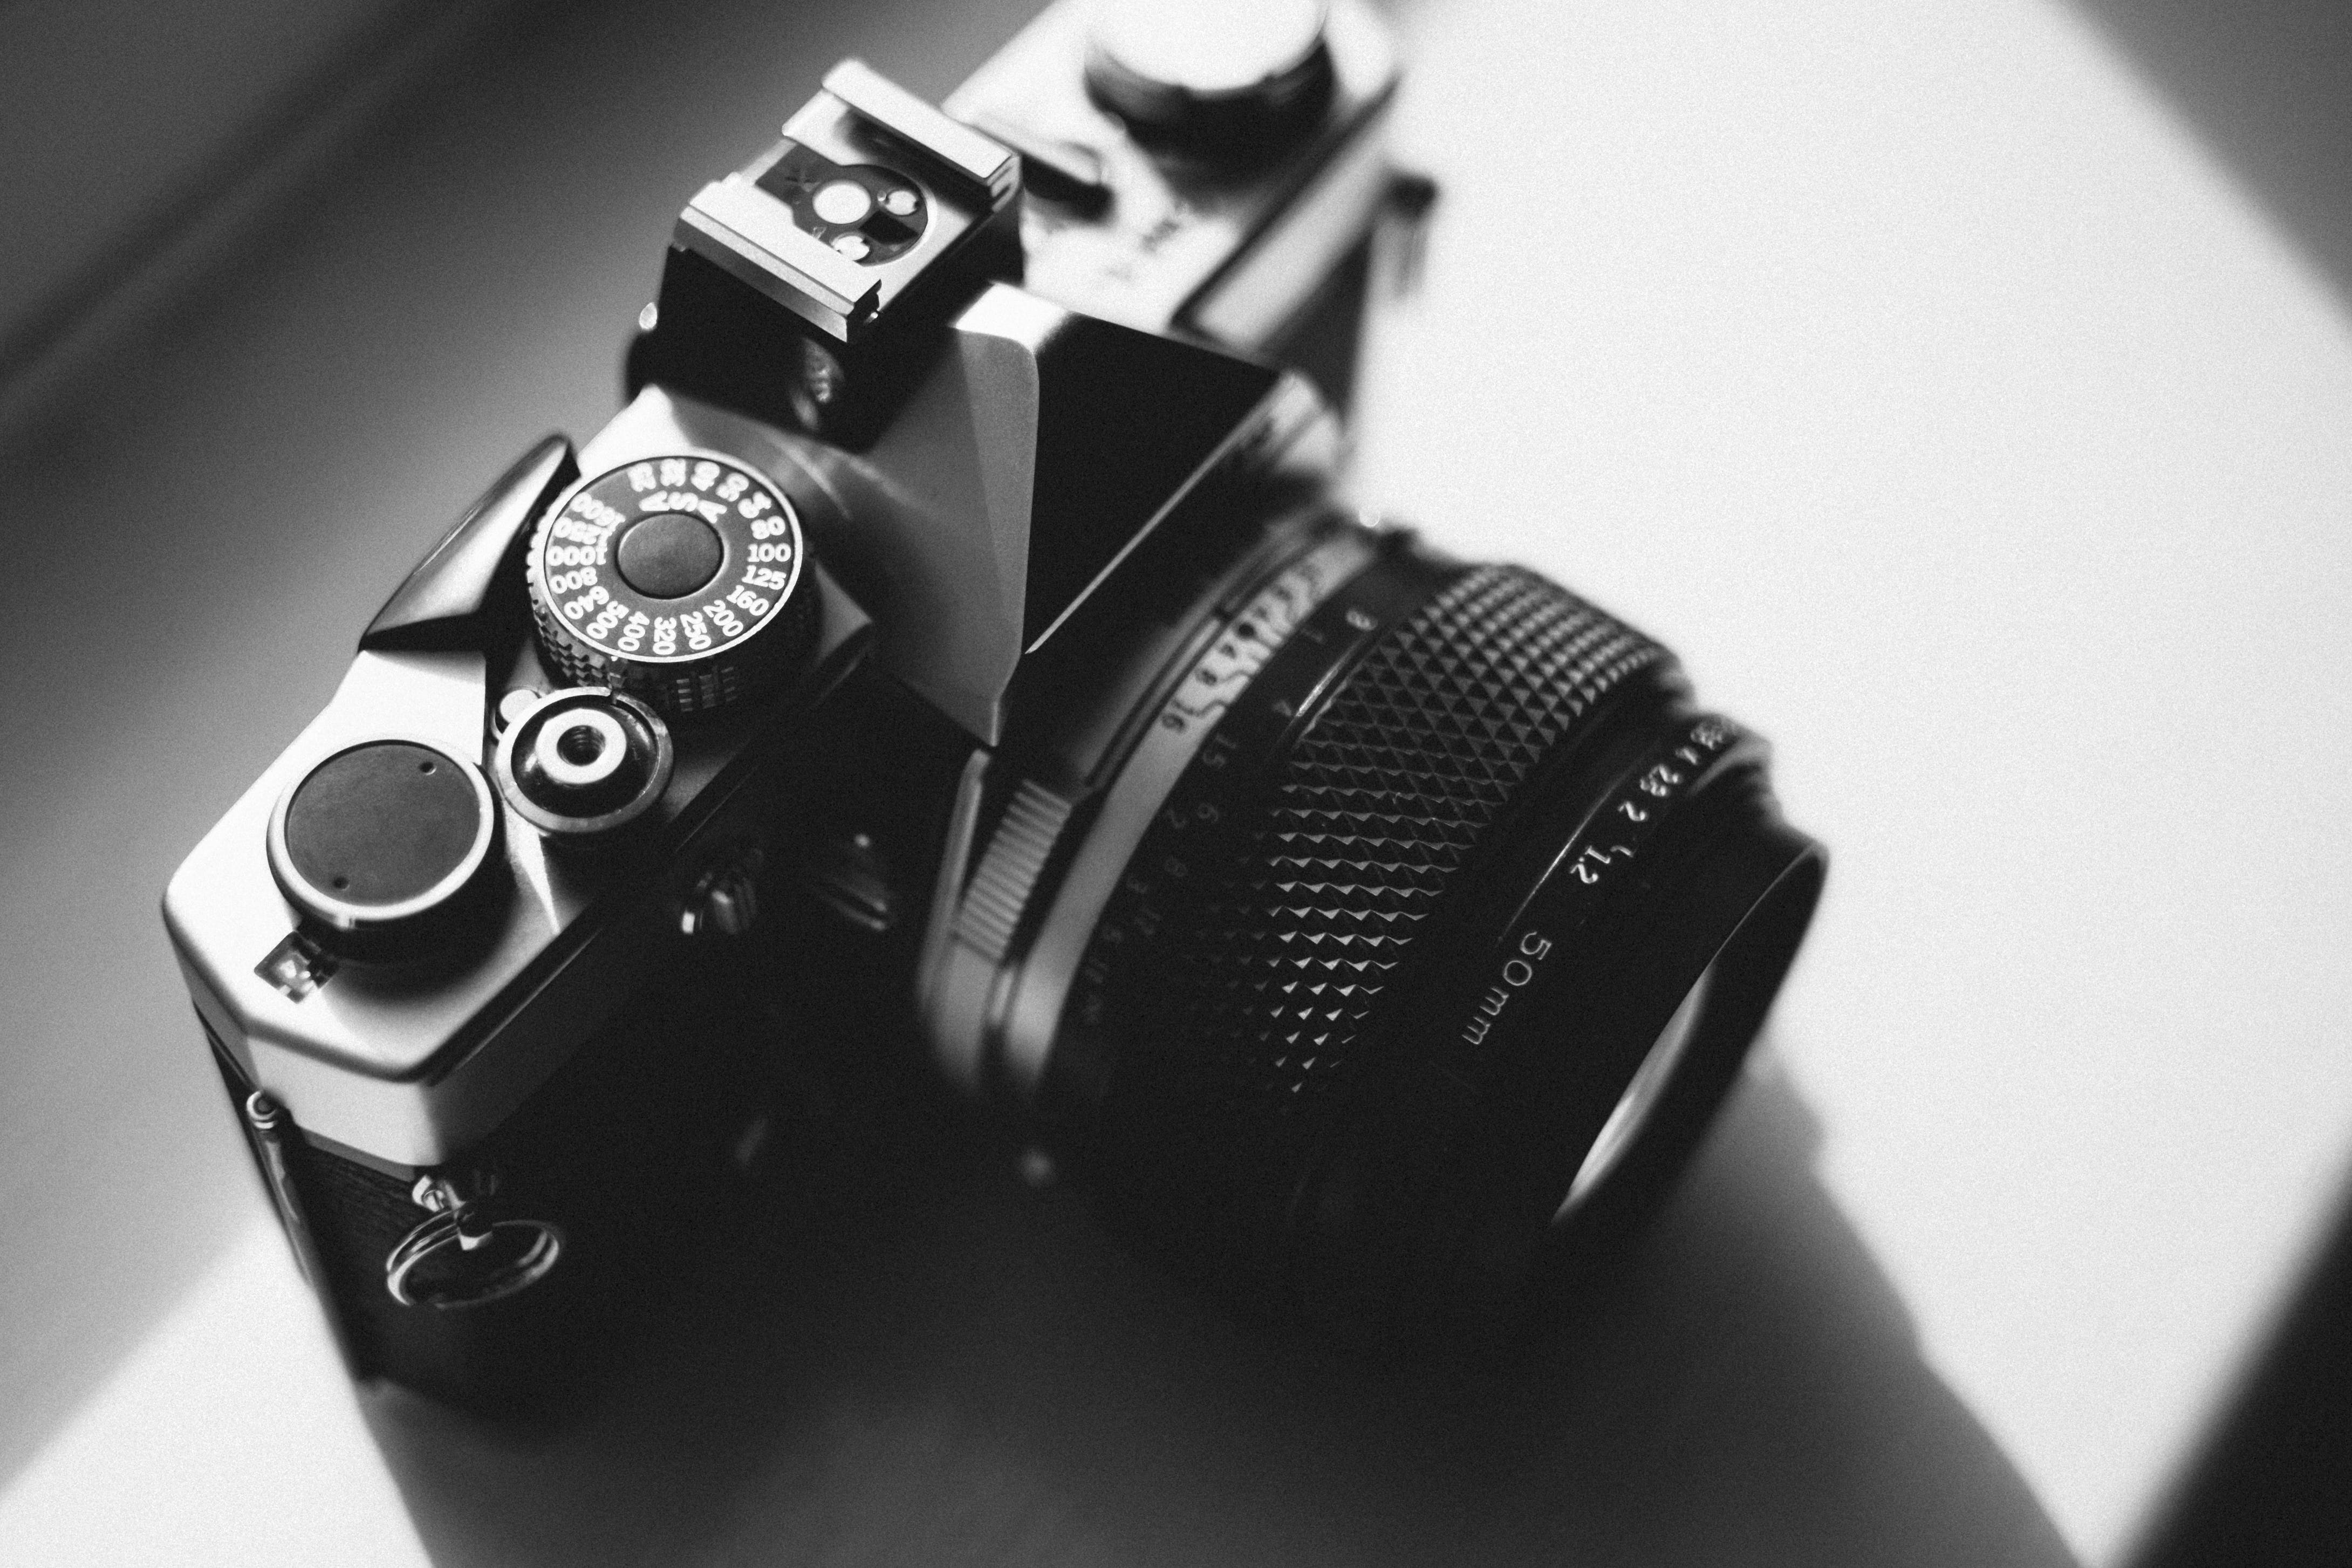 Black and Gray Dslr Camera on White Surface